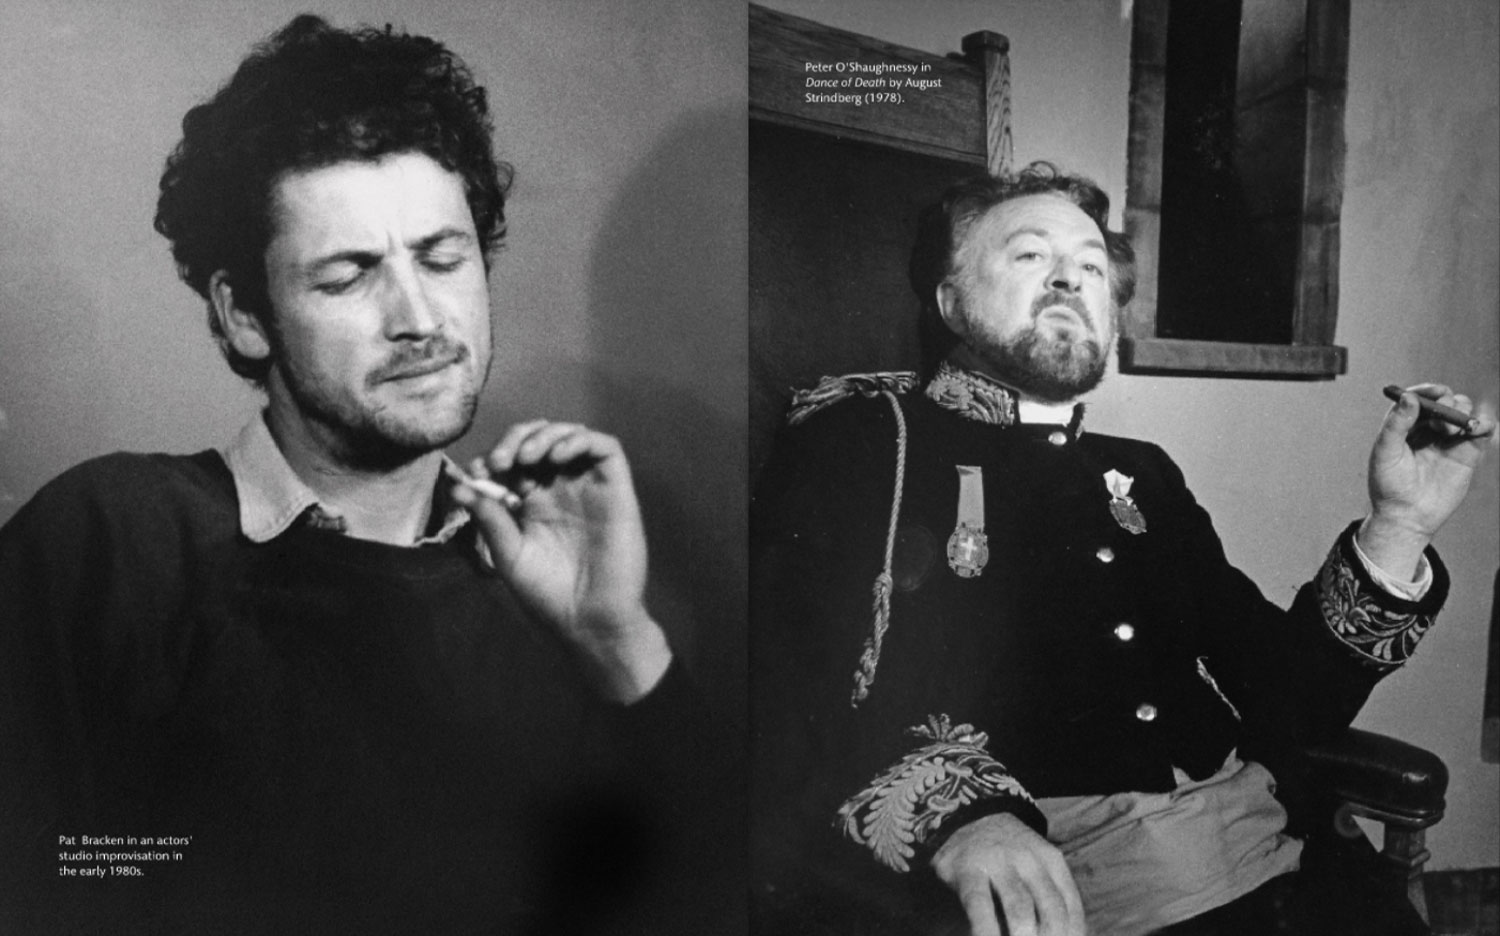 Two actor portraits in black and white (review)